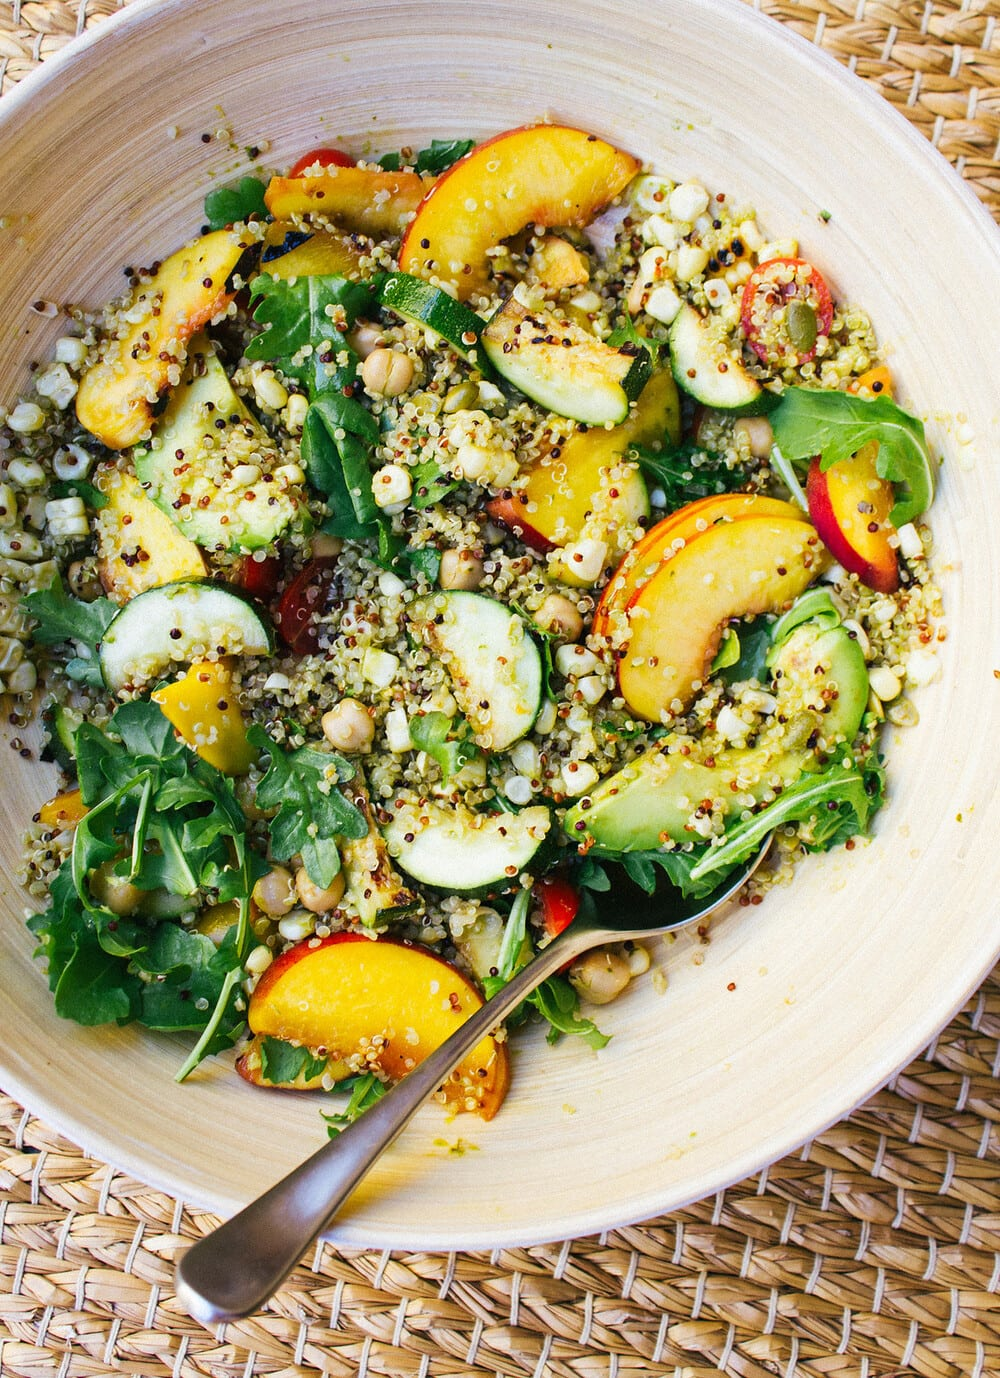 top down view of grilled peach, corn and zucchini quinoa salad mixed together in a mixing bowl.